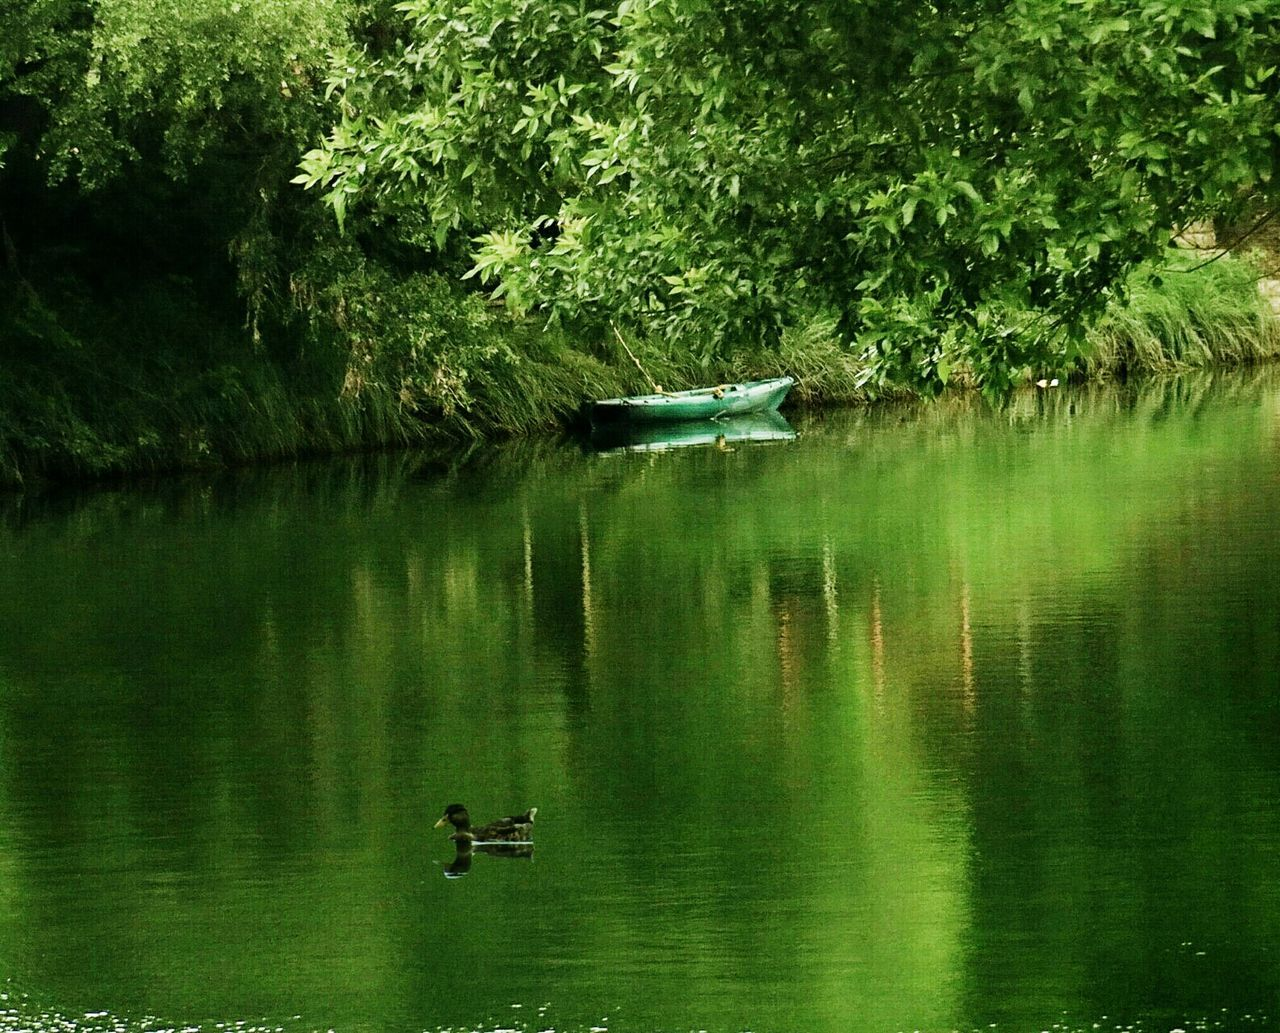 water, lake, reflection, nature, tree, nautical vessel, mode of transport, waterfront, transportation, beauty in nature, tranquility, outdoors, day, tranquil scene, one animal, animal themes, green color, floating on water, scenics, growth, no people, raft, animals in the wild, grass, swimming, bird